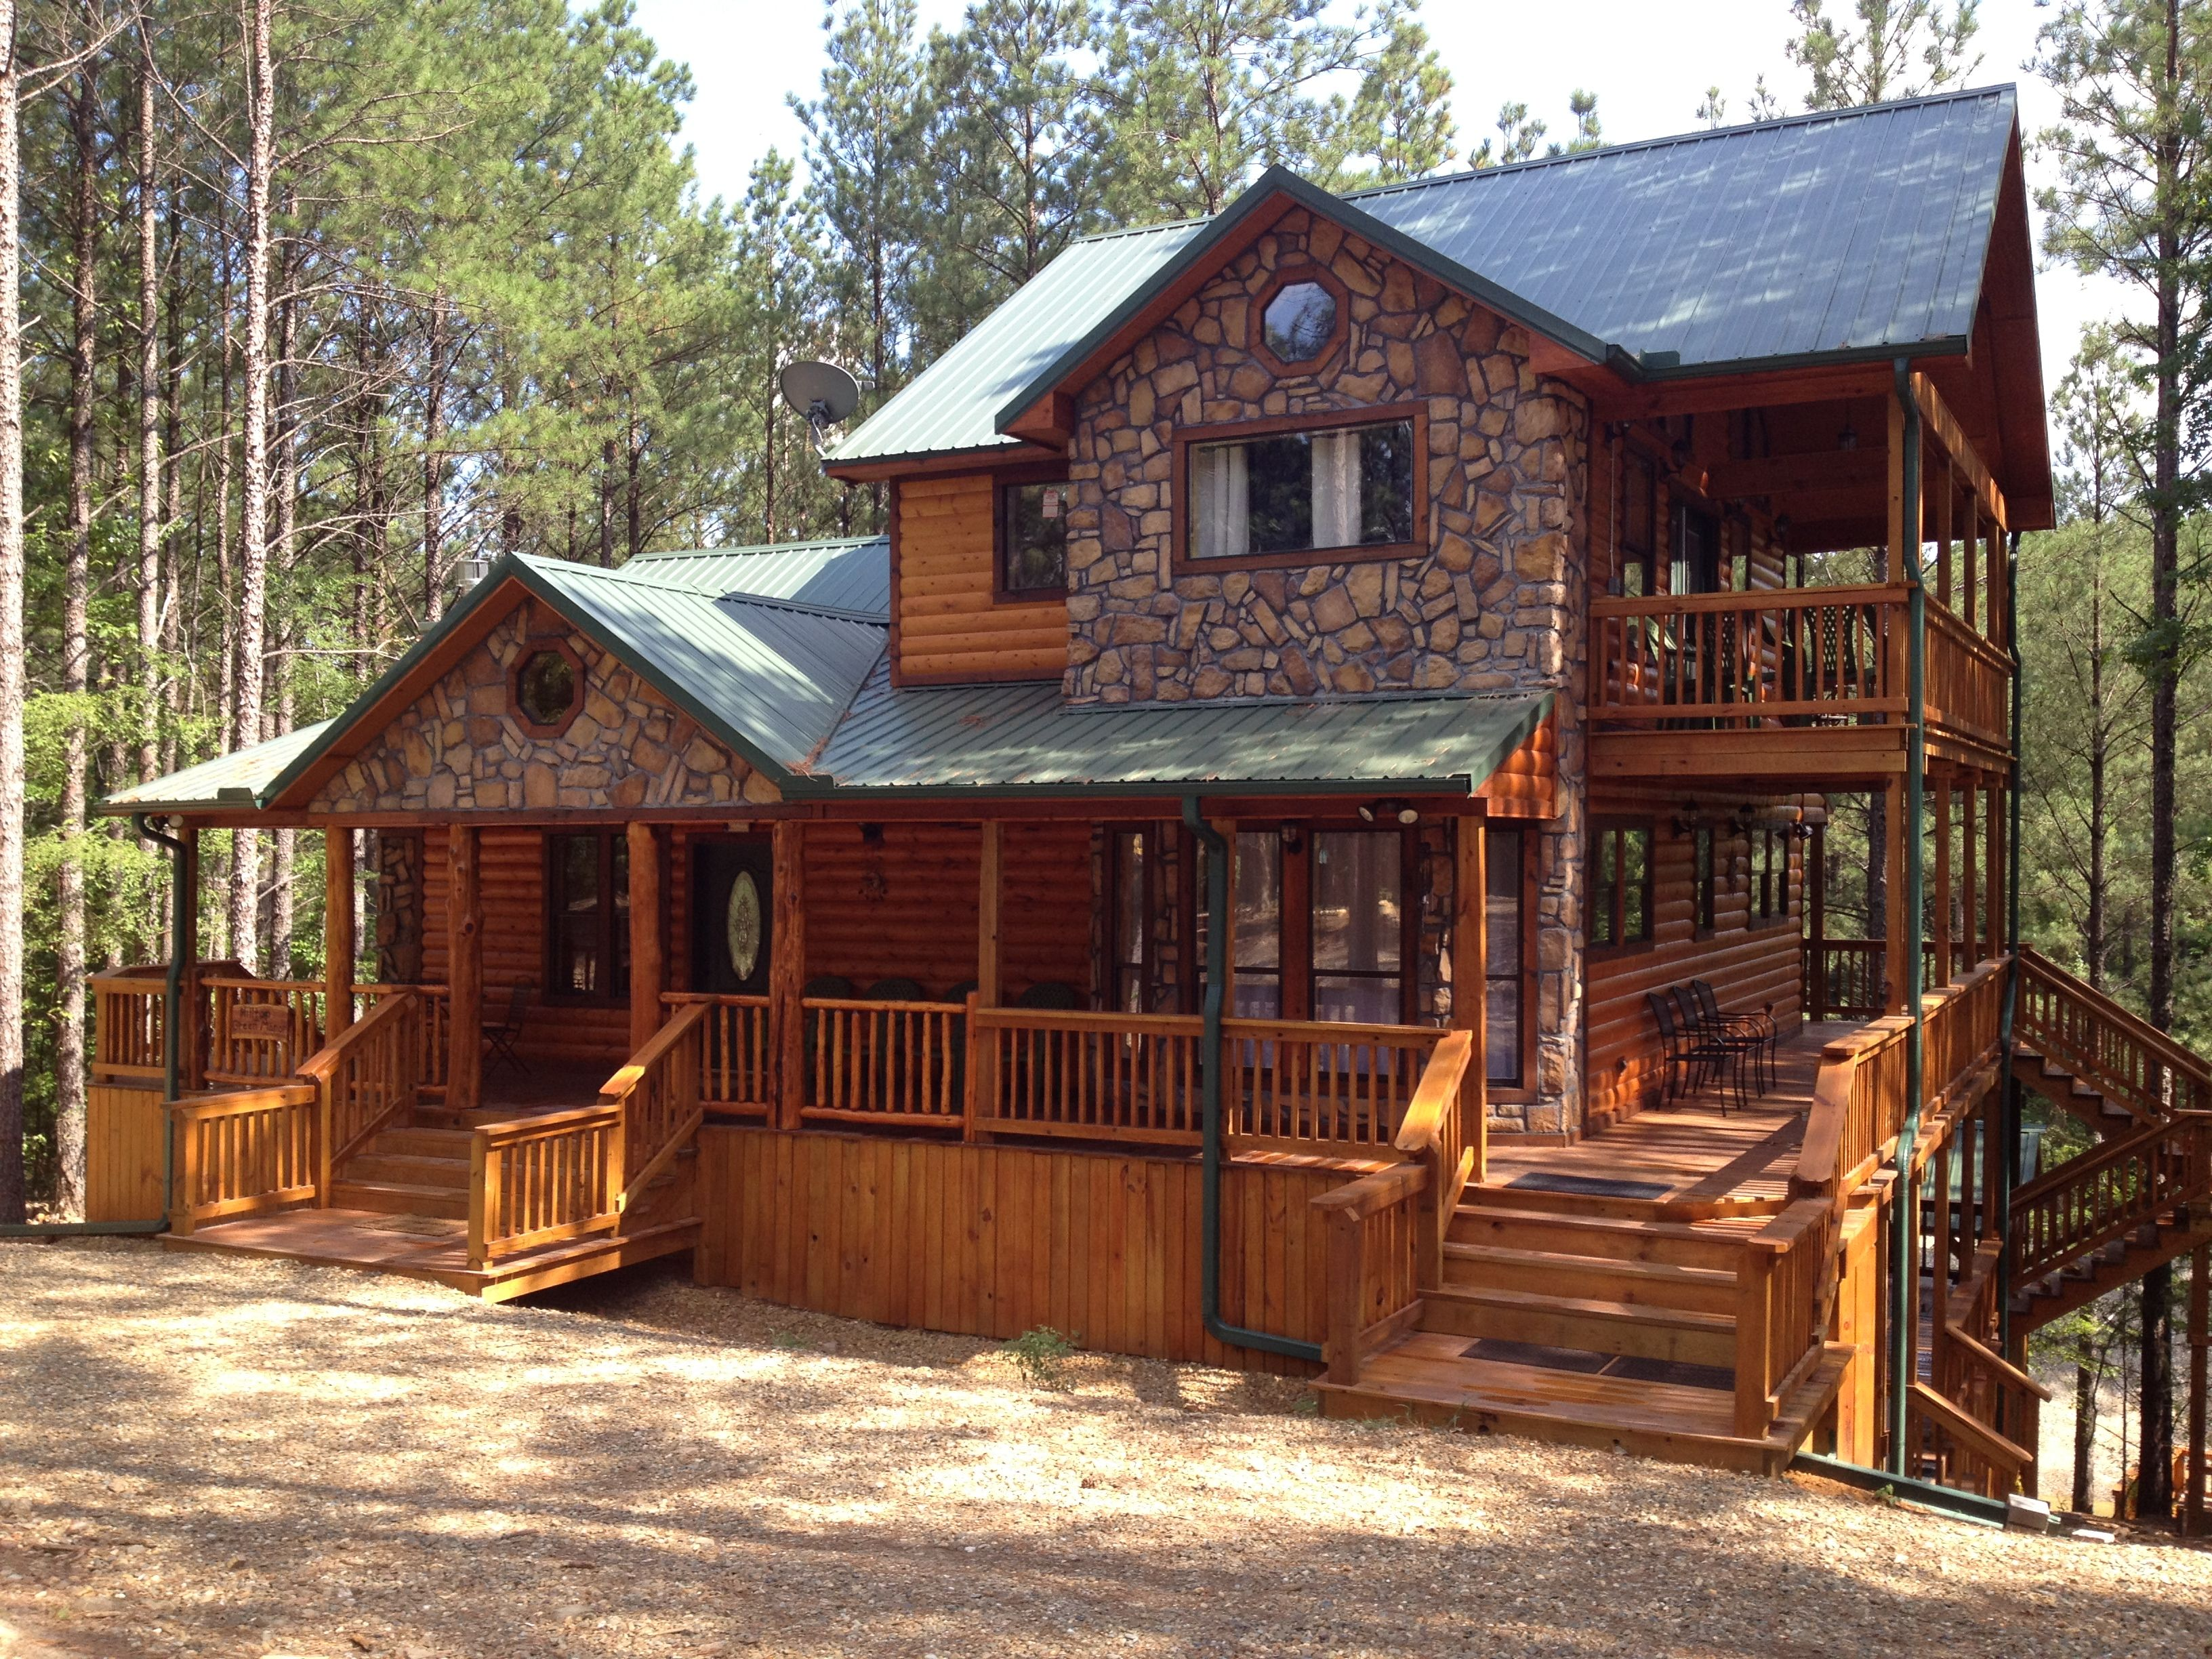 cabin one of s settings cabins original most in mission valley beautiful country an montana rentals pin the poised